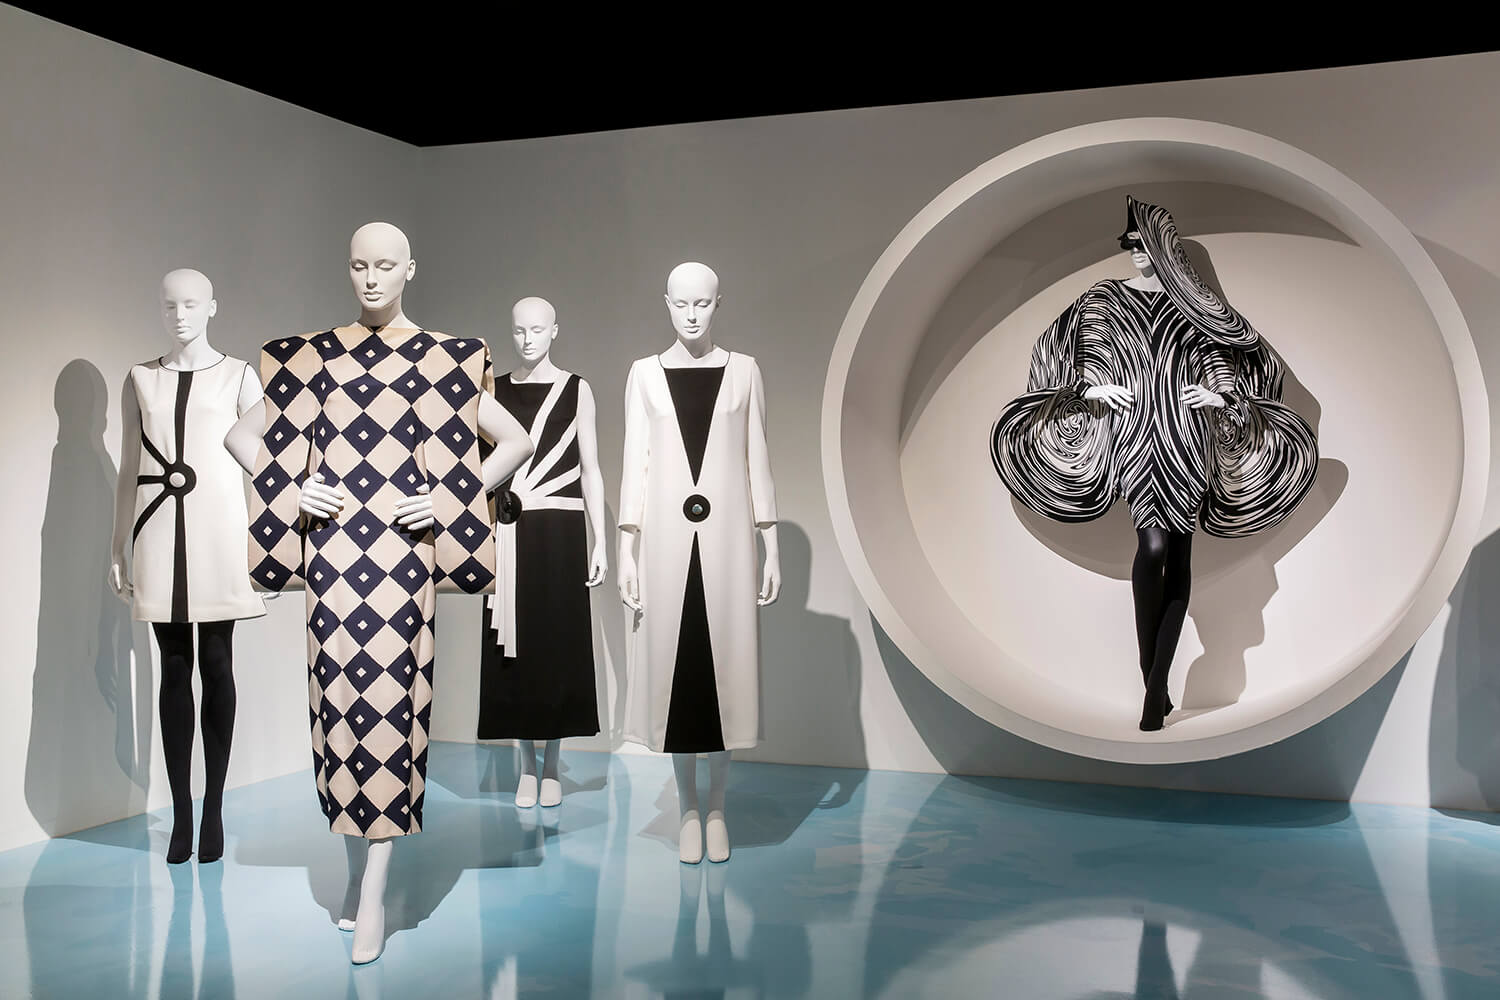 Scad Fash Museum of Fashion Film Things to do in Atlanta